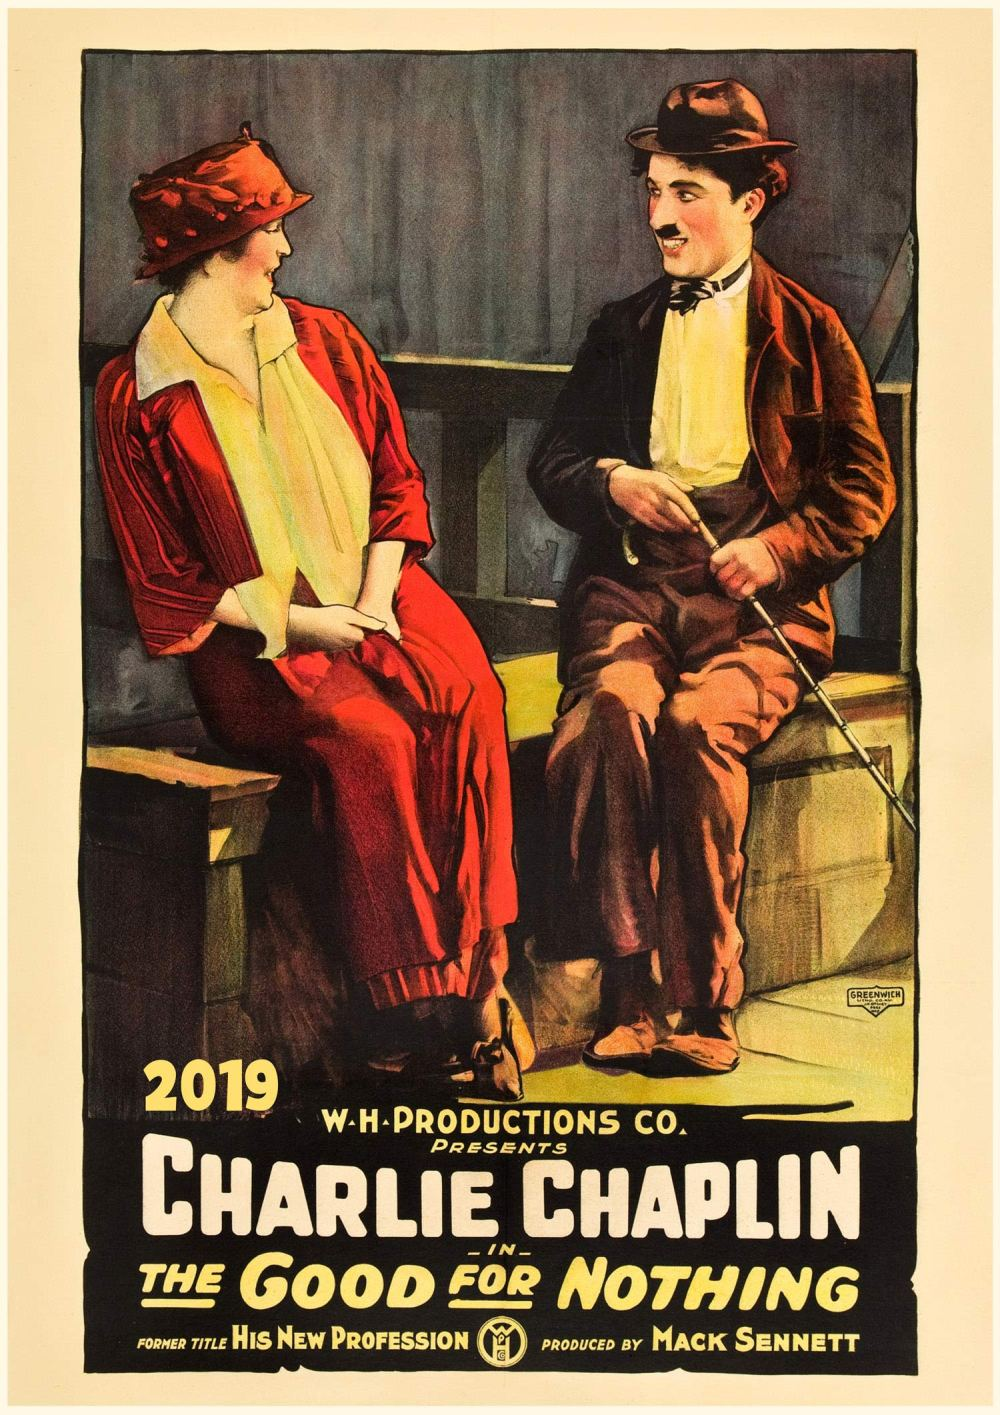 Charlie Chaplin Early Movies Vintage Posters